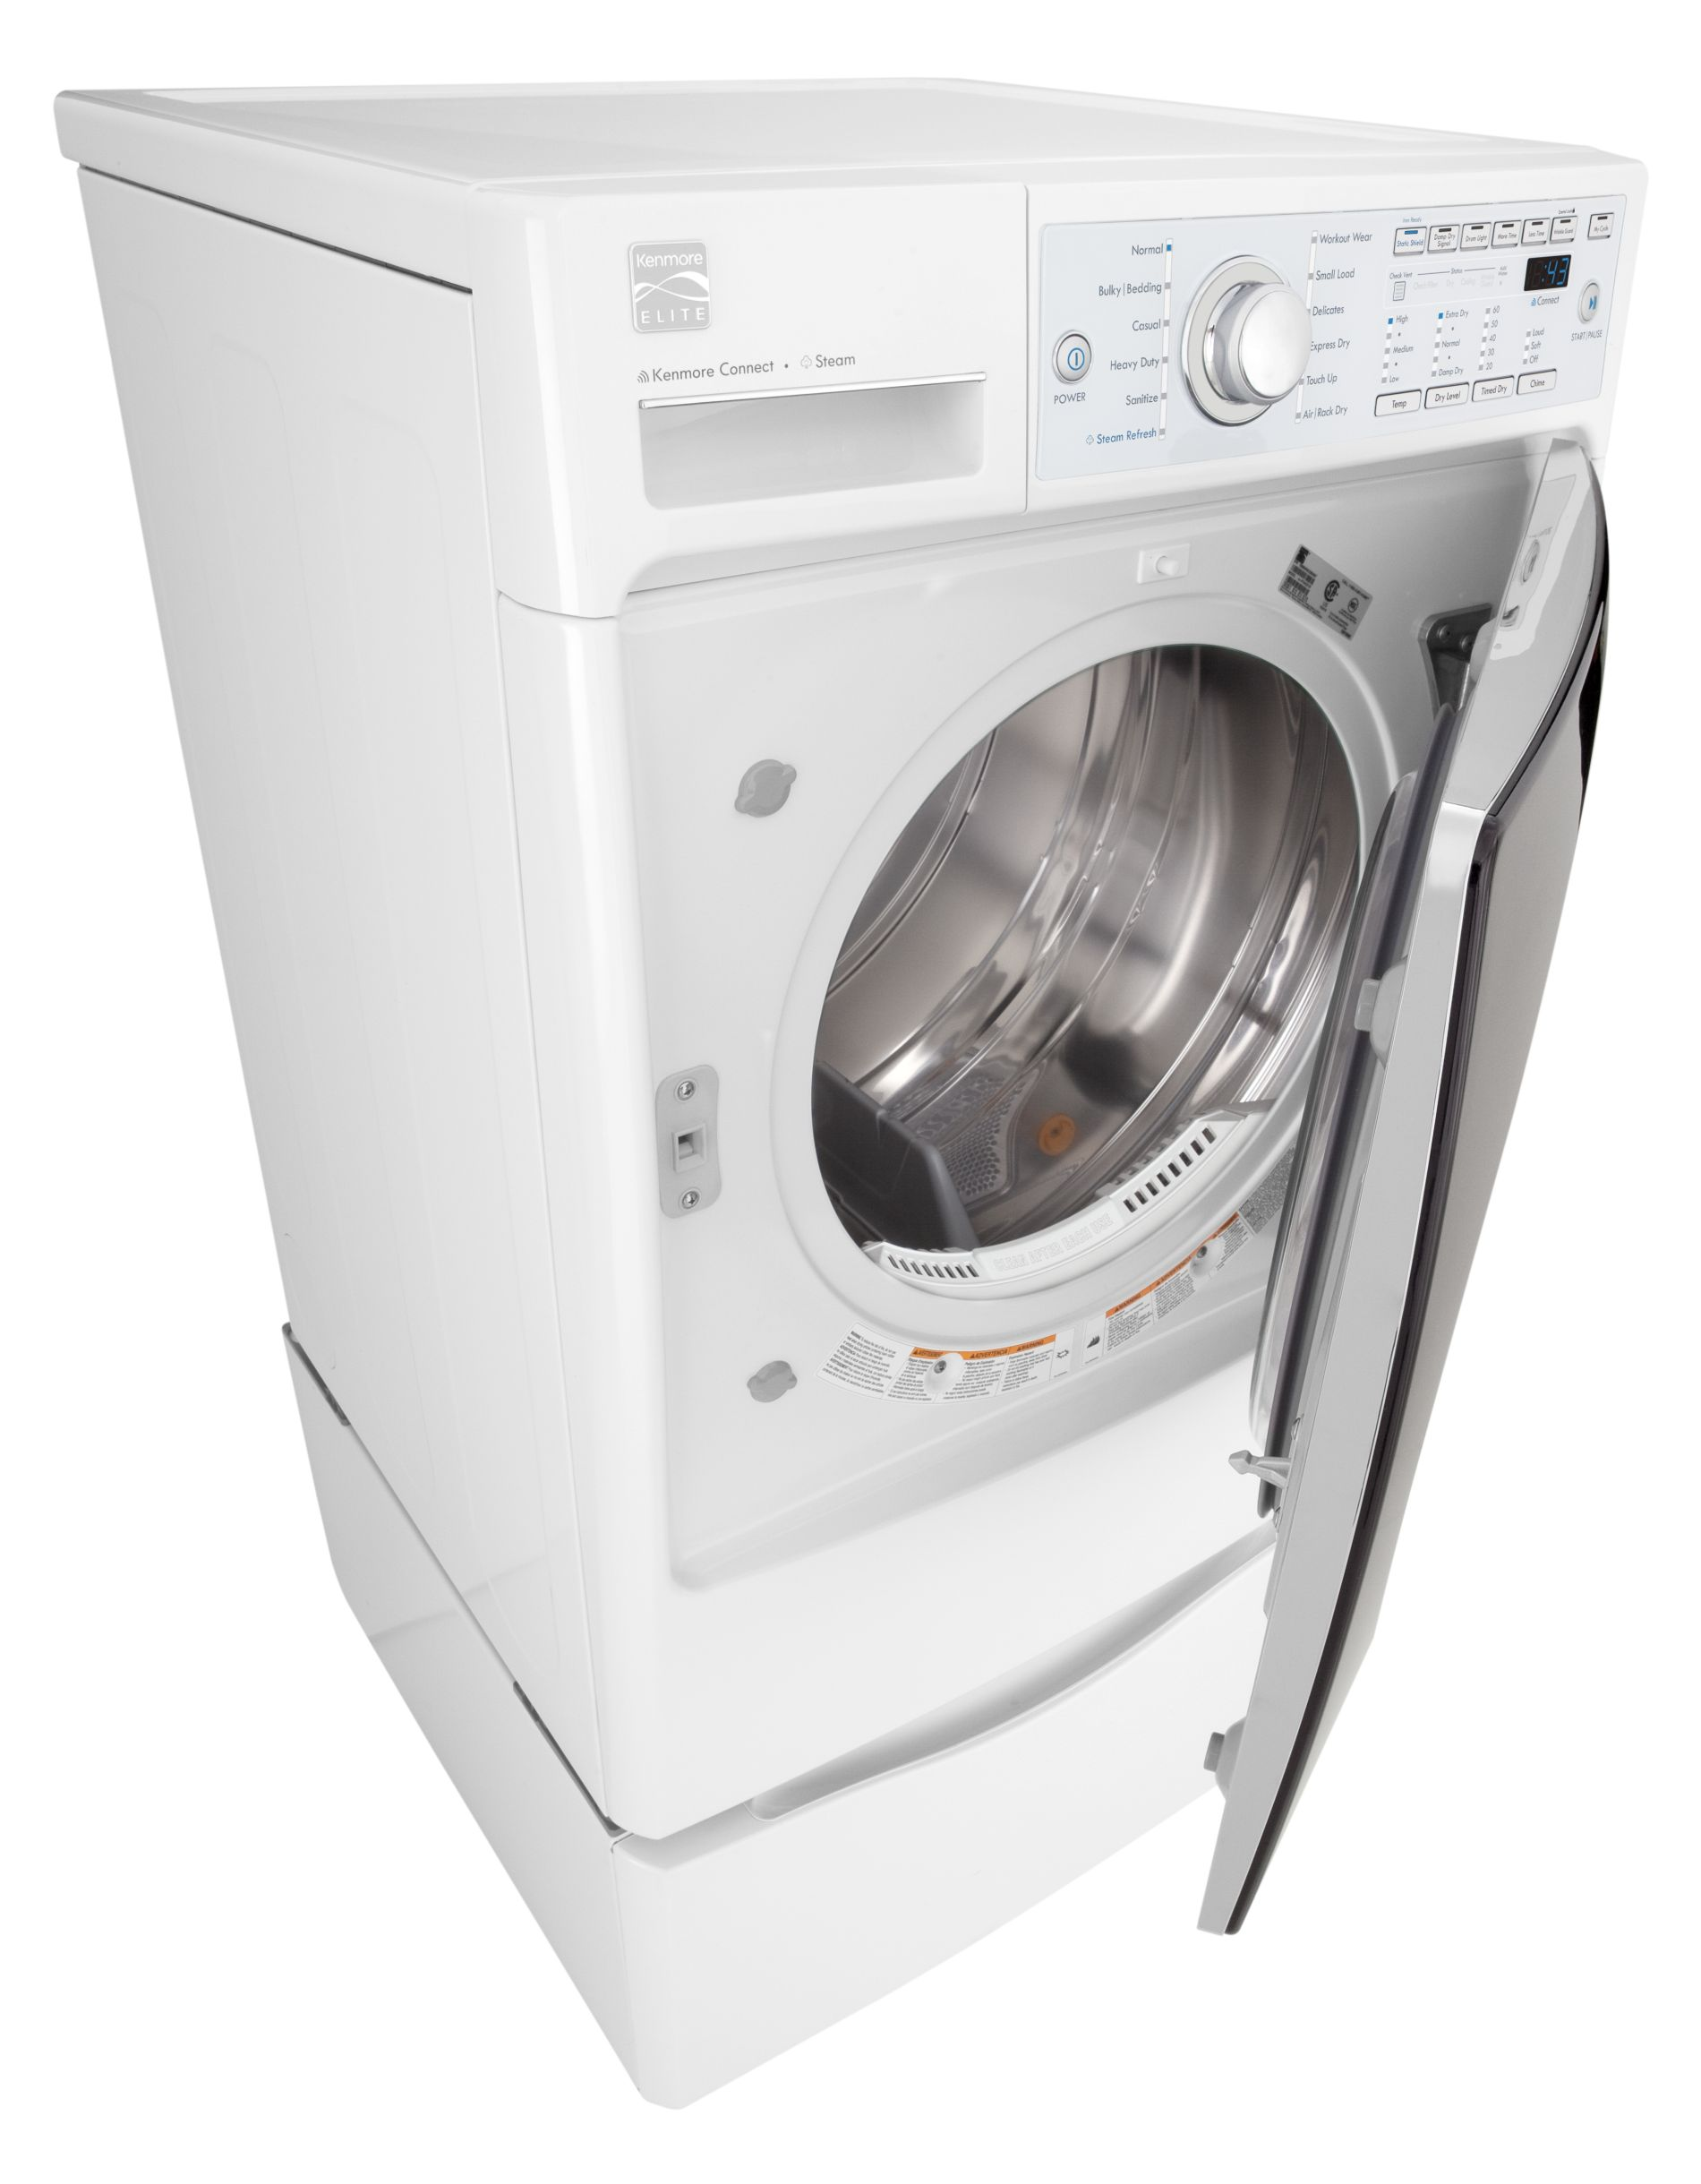 Kenmore Elite 7.3 cu. ft. Gas Steam Dryer - White